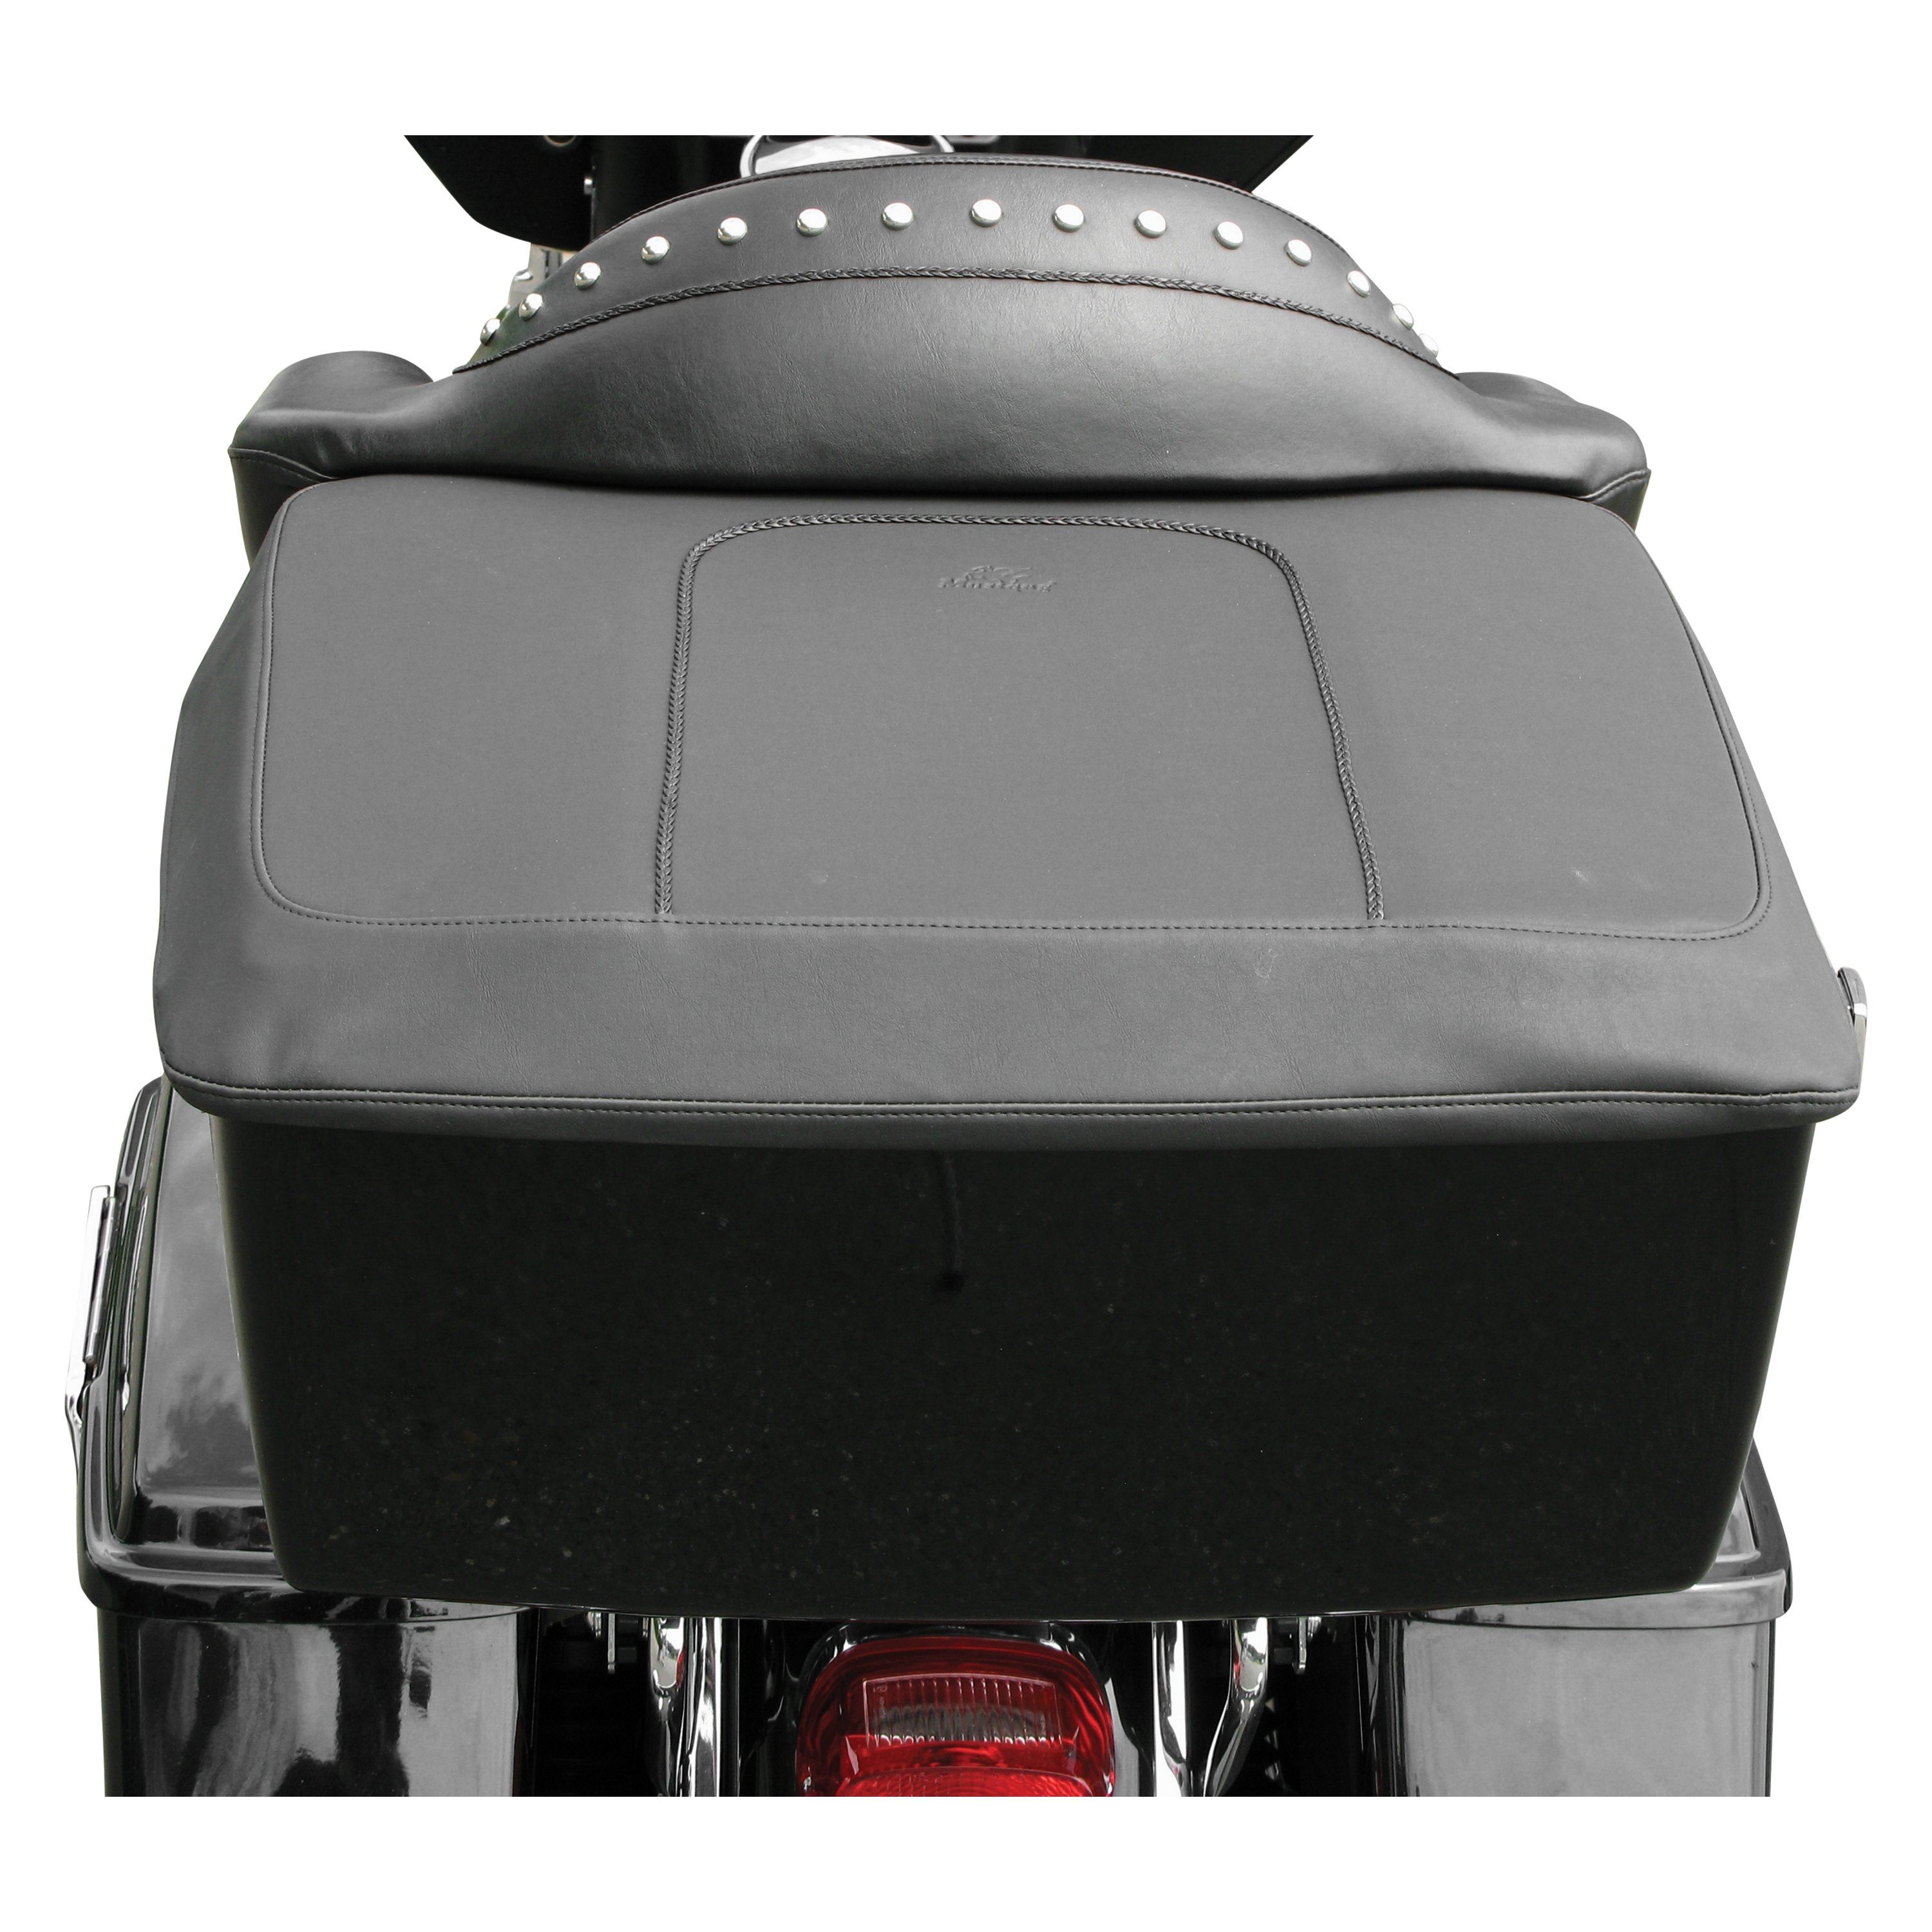 Tour-Pak Trunk Lid Cover Mustang No Studs 77601